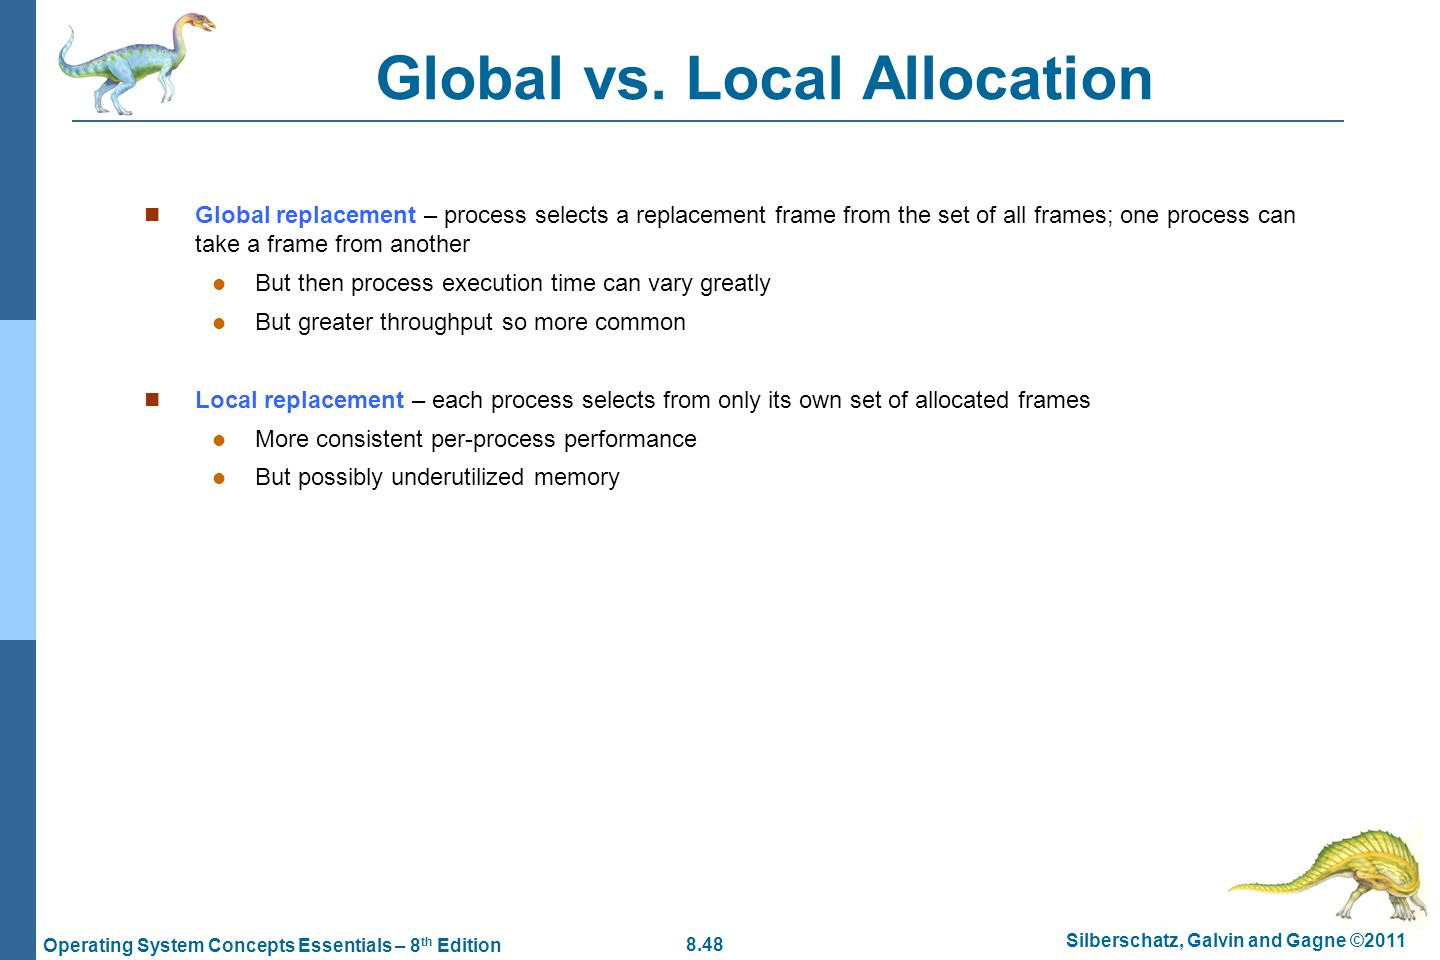 8.48 Silberschatz, Galvin and Gagne ©2011 Operating System Concepts Essentials – 8 th Edition Global vs. Local Allocation Global replacement – process